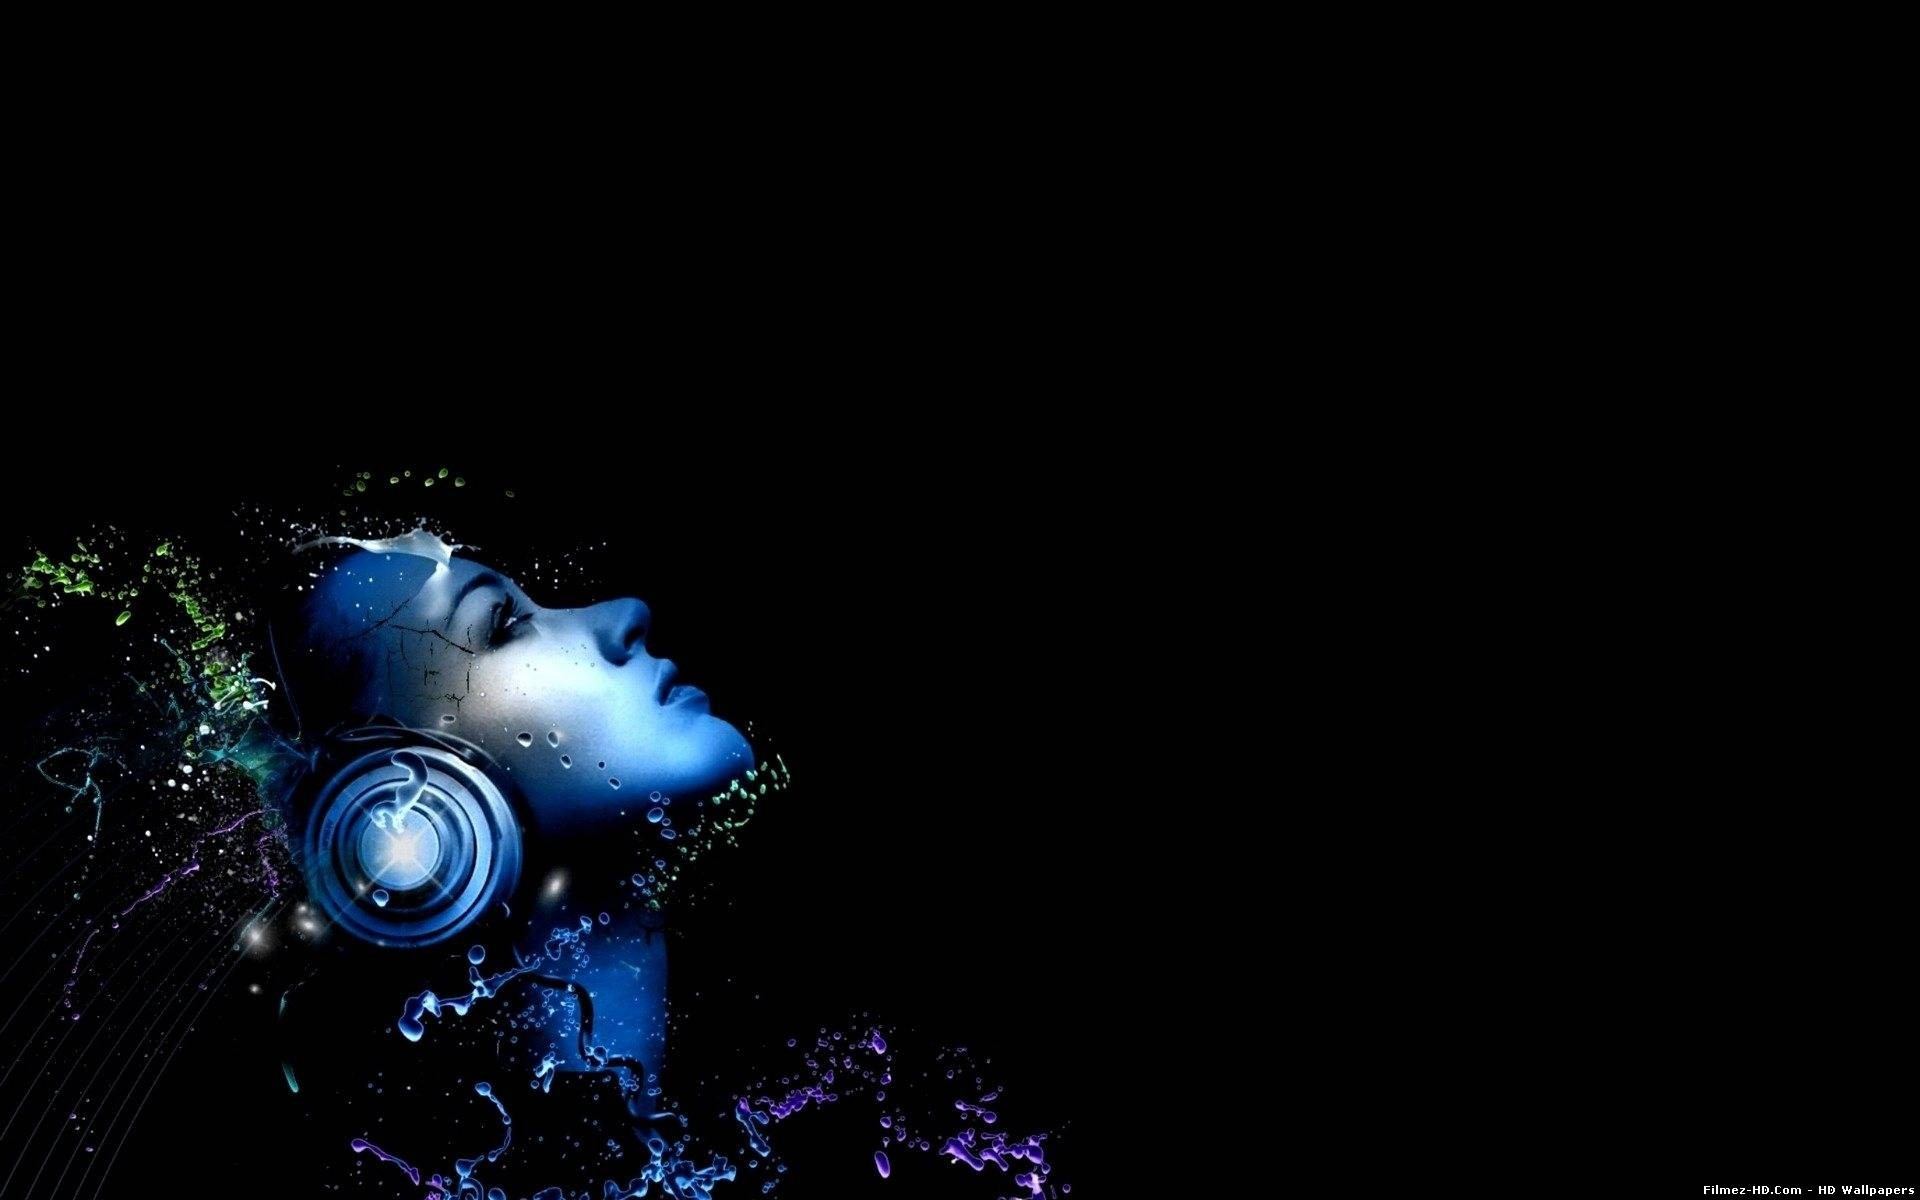 Music Hd Music Wallpapers, Widescreen Pictures From - Blue Music Wallpaper Hd - HD Wallpaper